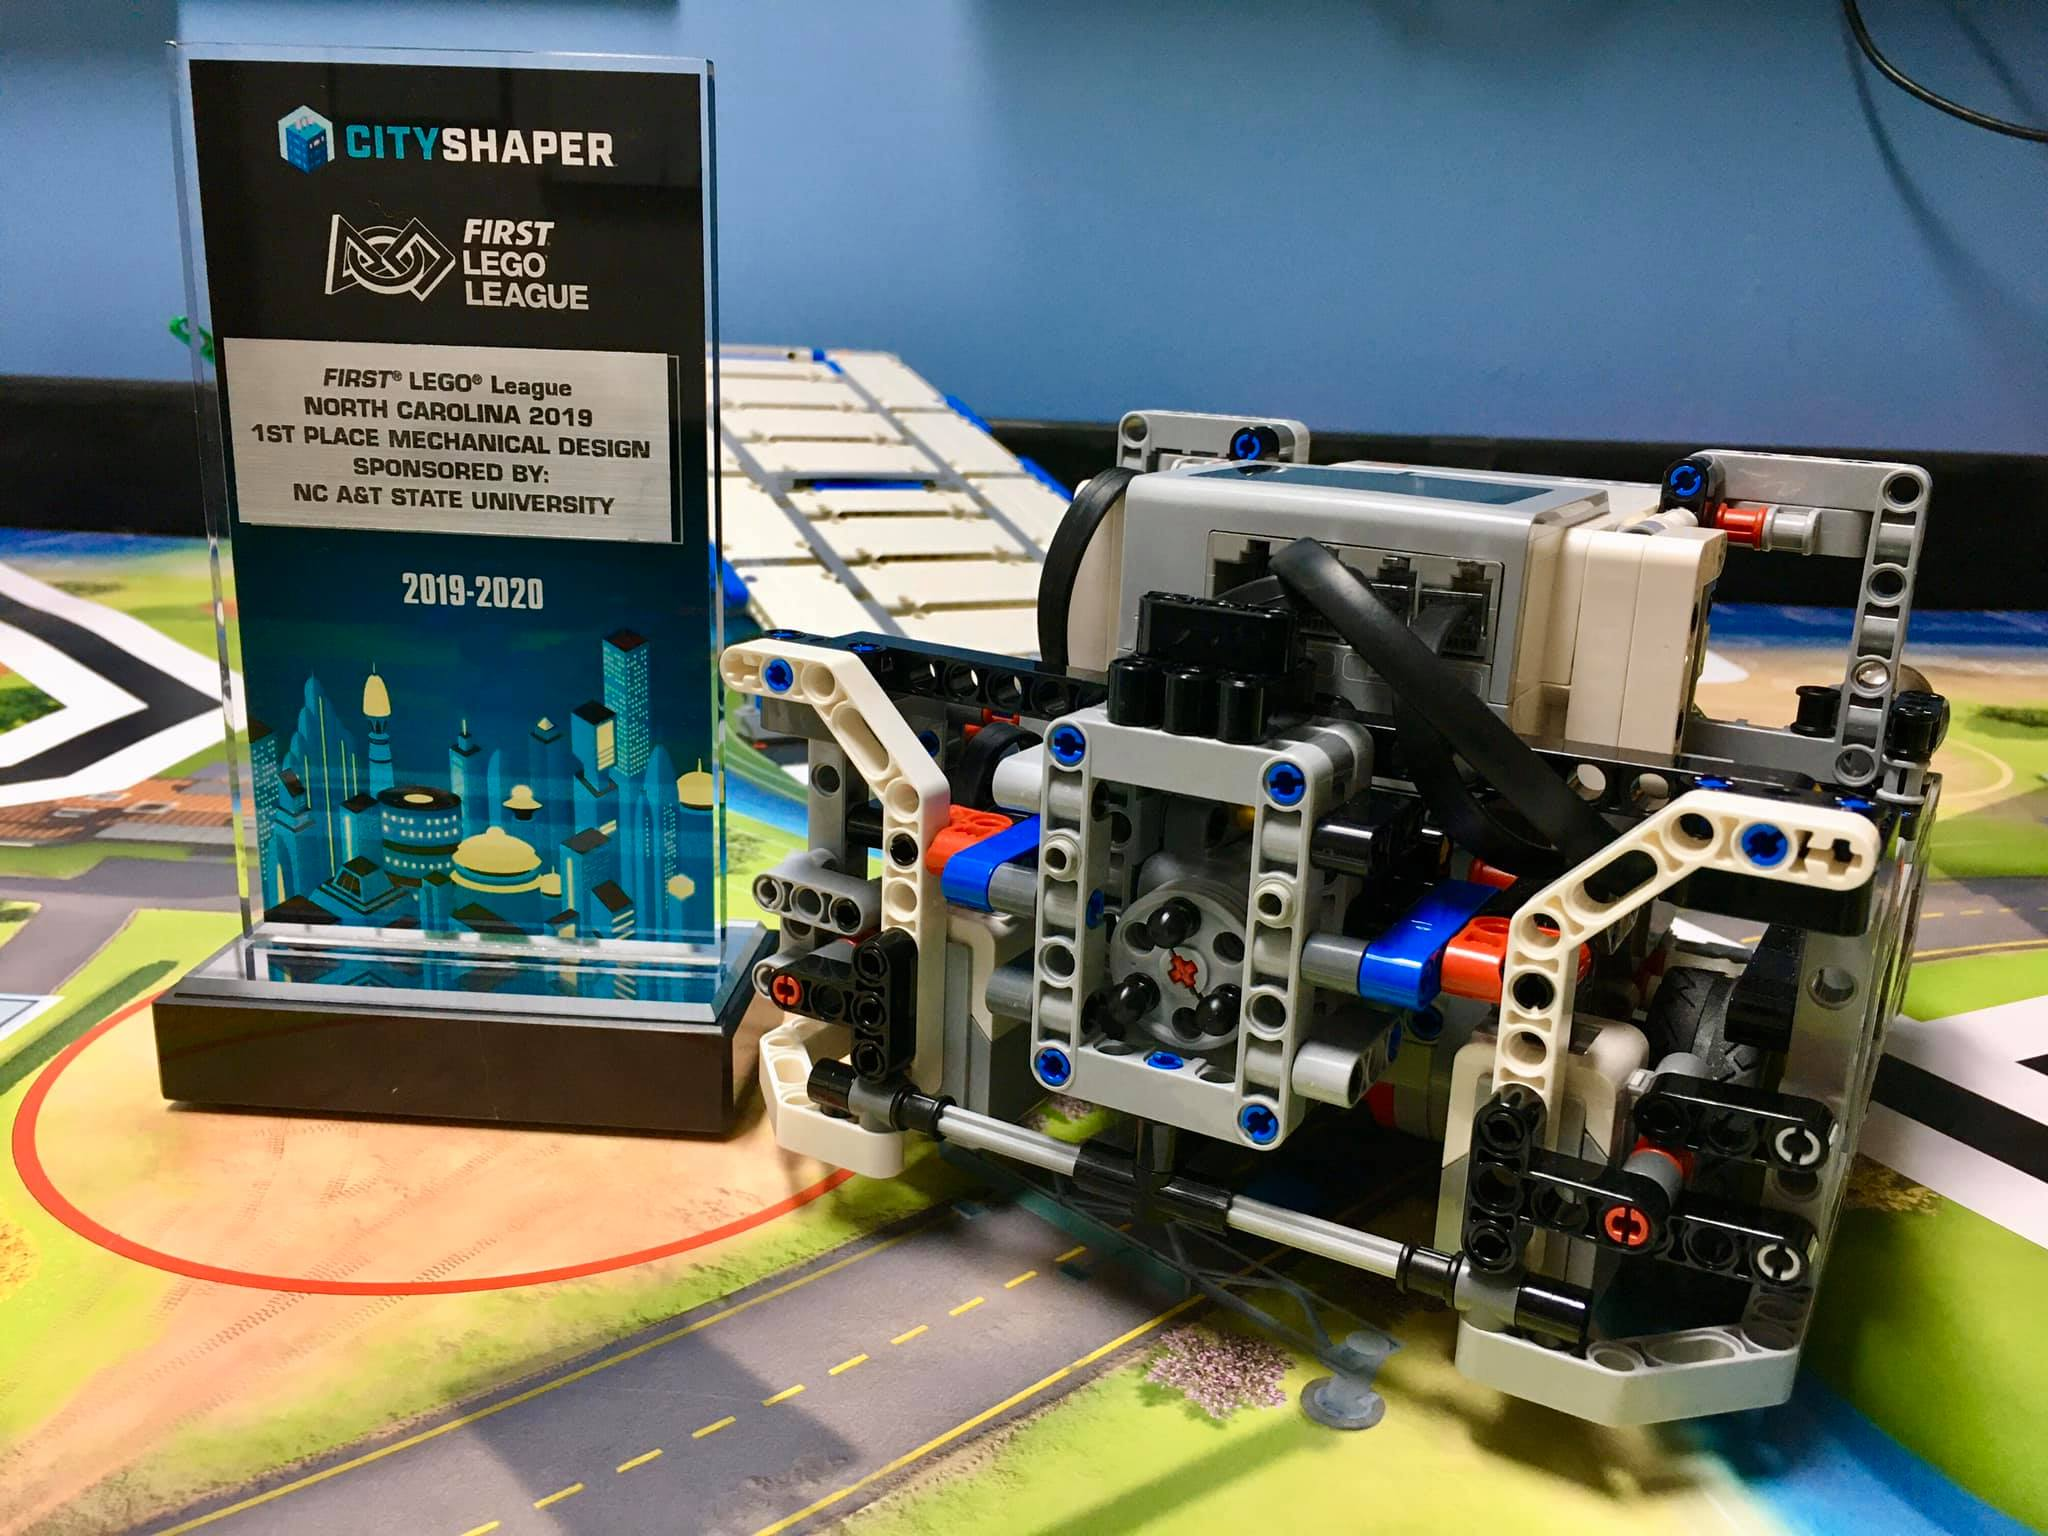 Fuquay-Varina LEGO Robotics Club Earns First Place Mechanical Design Award at 2019 LEGO FIRST LEAGUE Competition